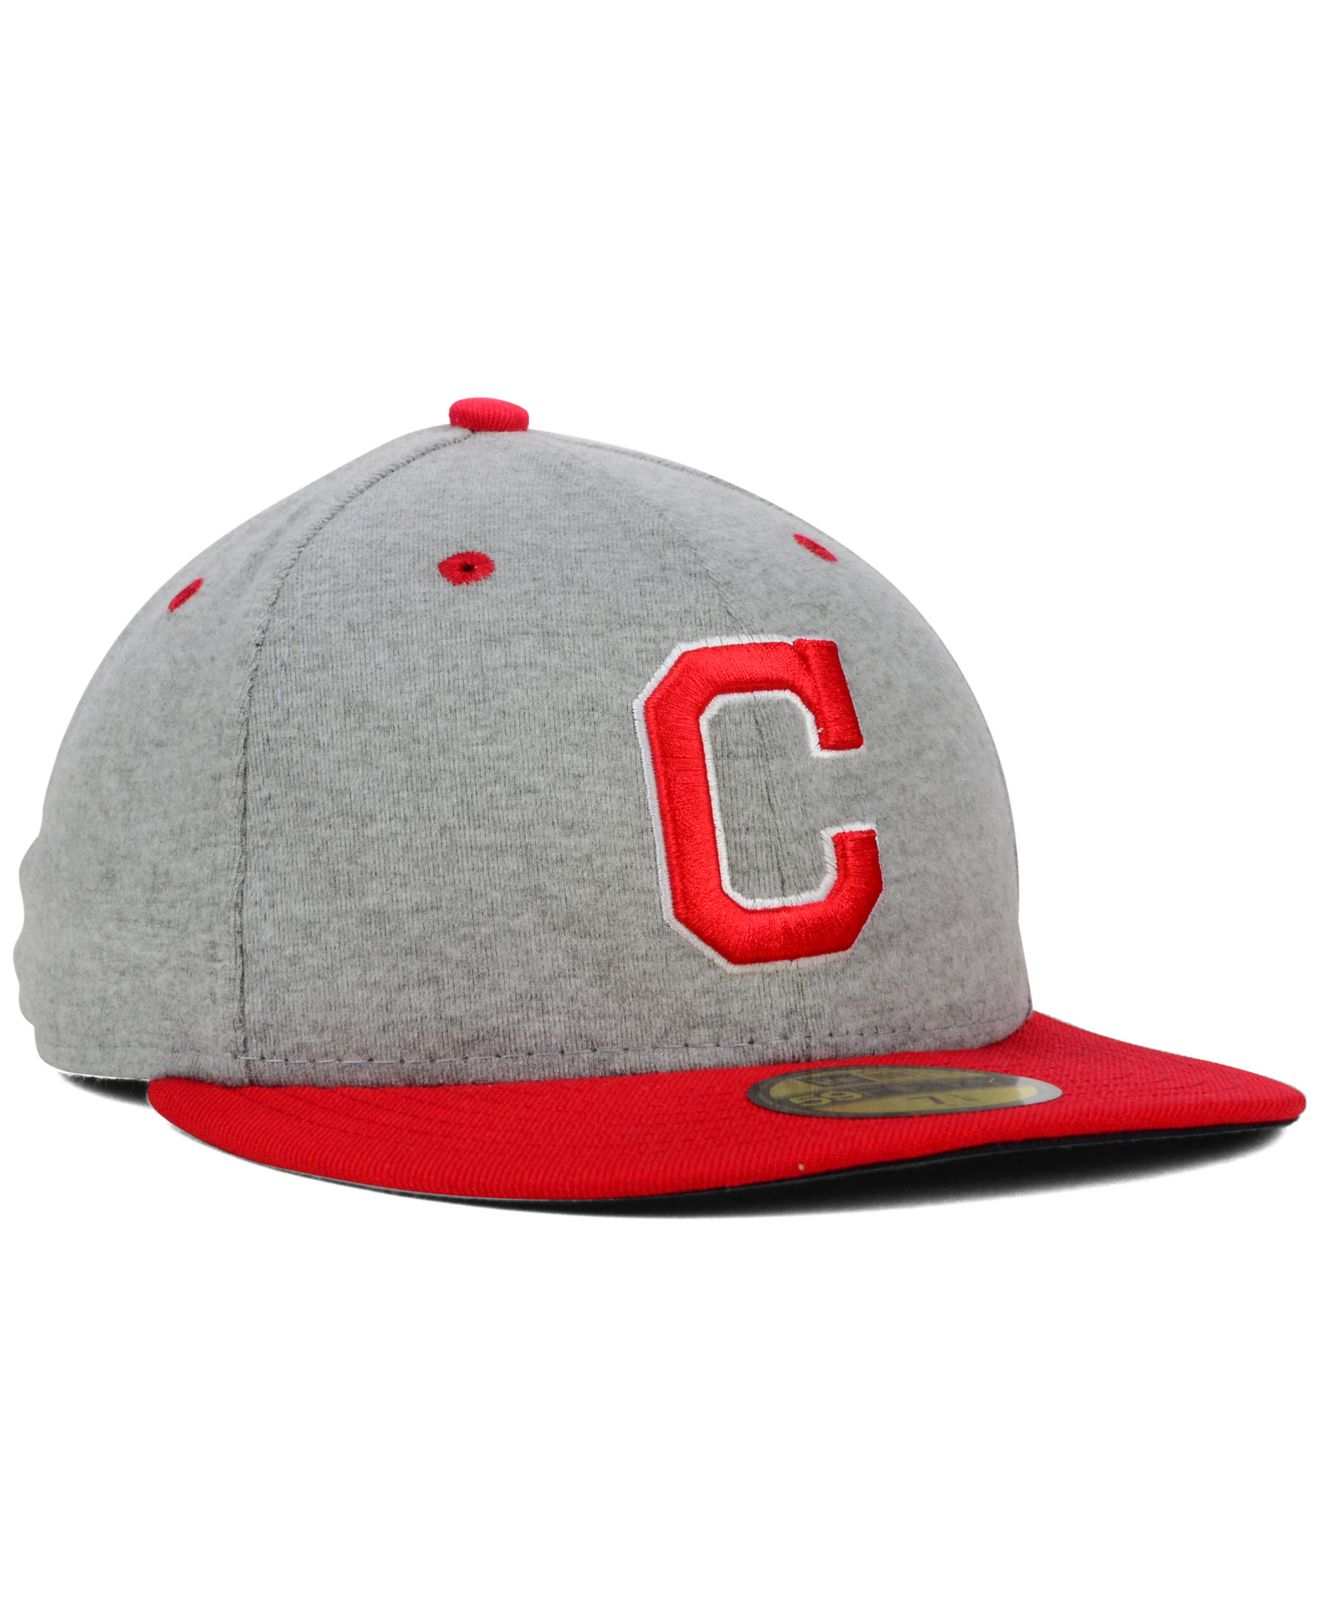 d85e1c567d9 germany cleveland indians new era blue 1973 cooperstown wool 59fifty fitted  hat be30a ffeb3  sweden lyst ktz cleveland indians sweat team pop 59fifty  cap in ...